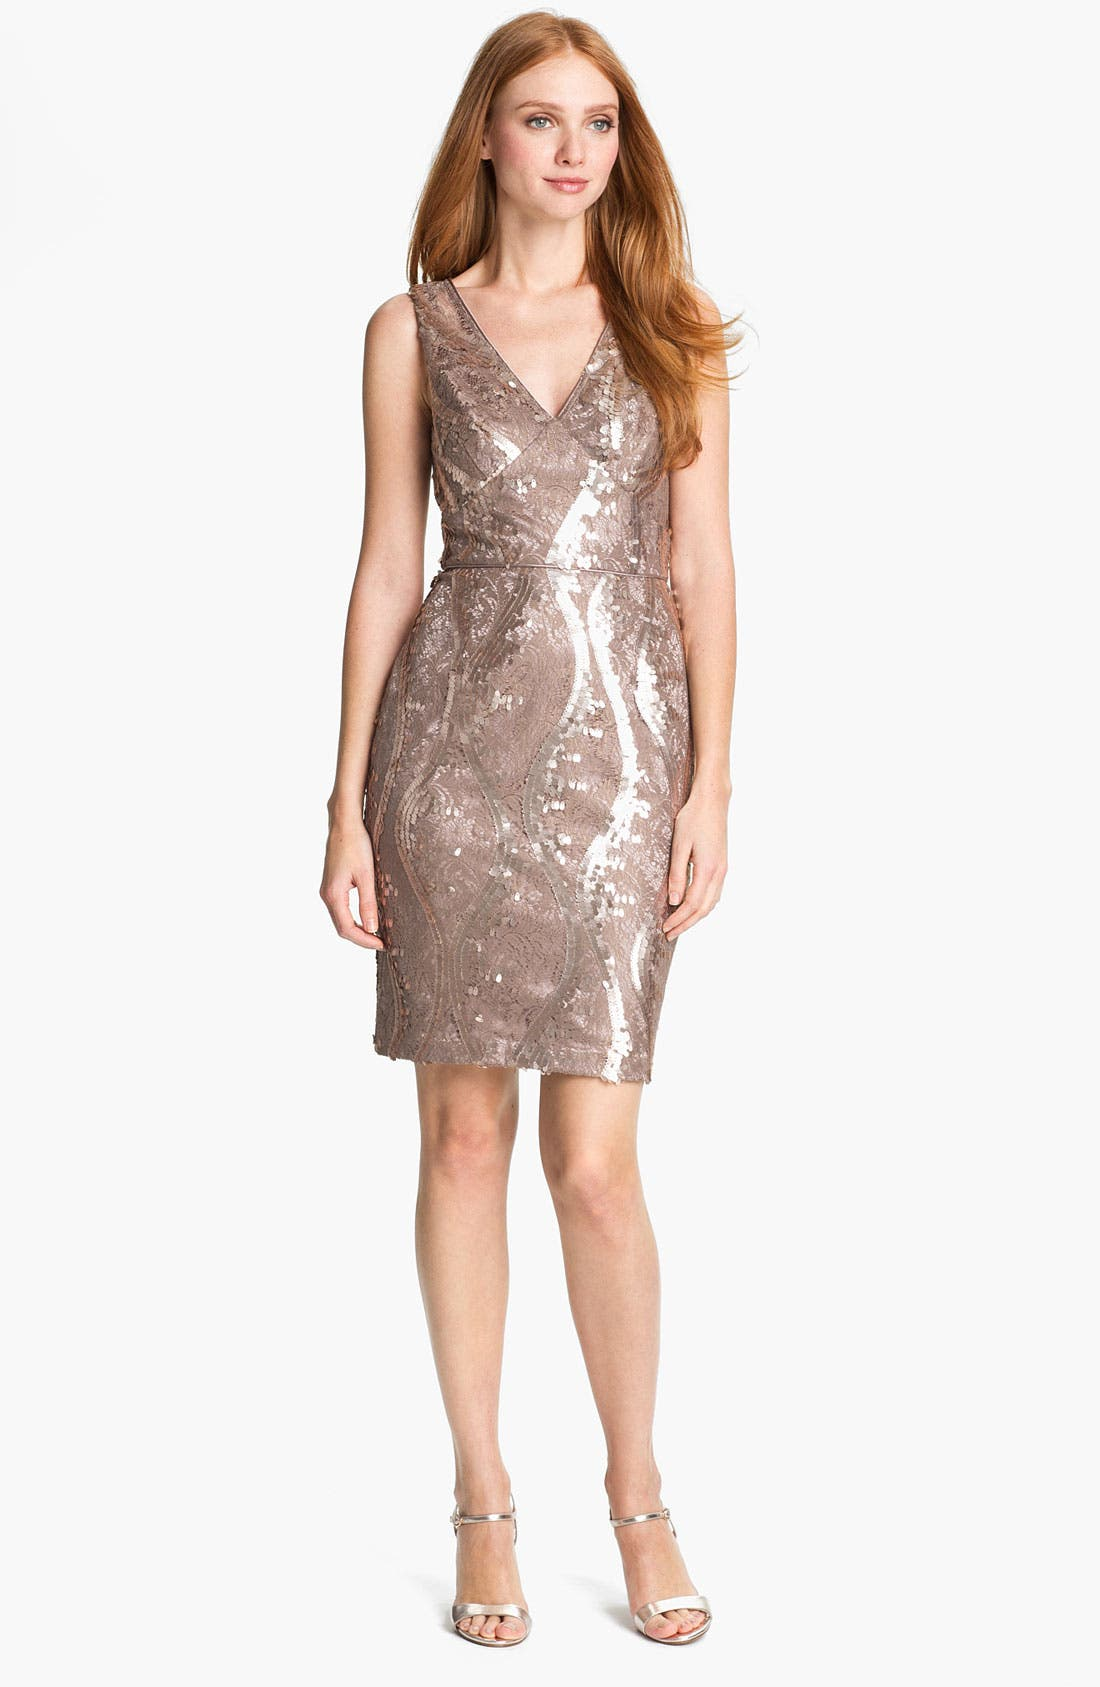 Alternate Image 1 Selected - Adrianna Papell Embellished Lace Cocktail Dress (Regular & Petite)